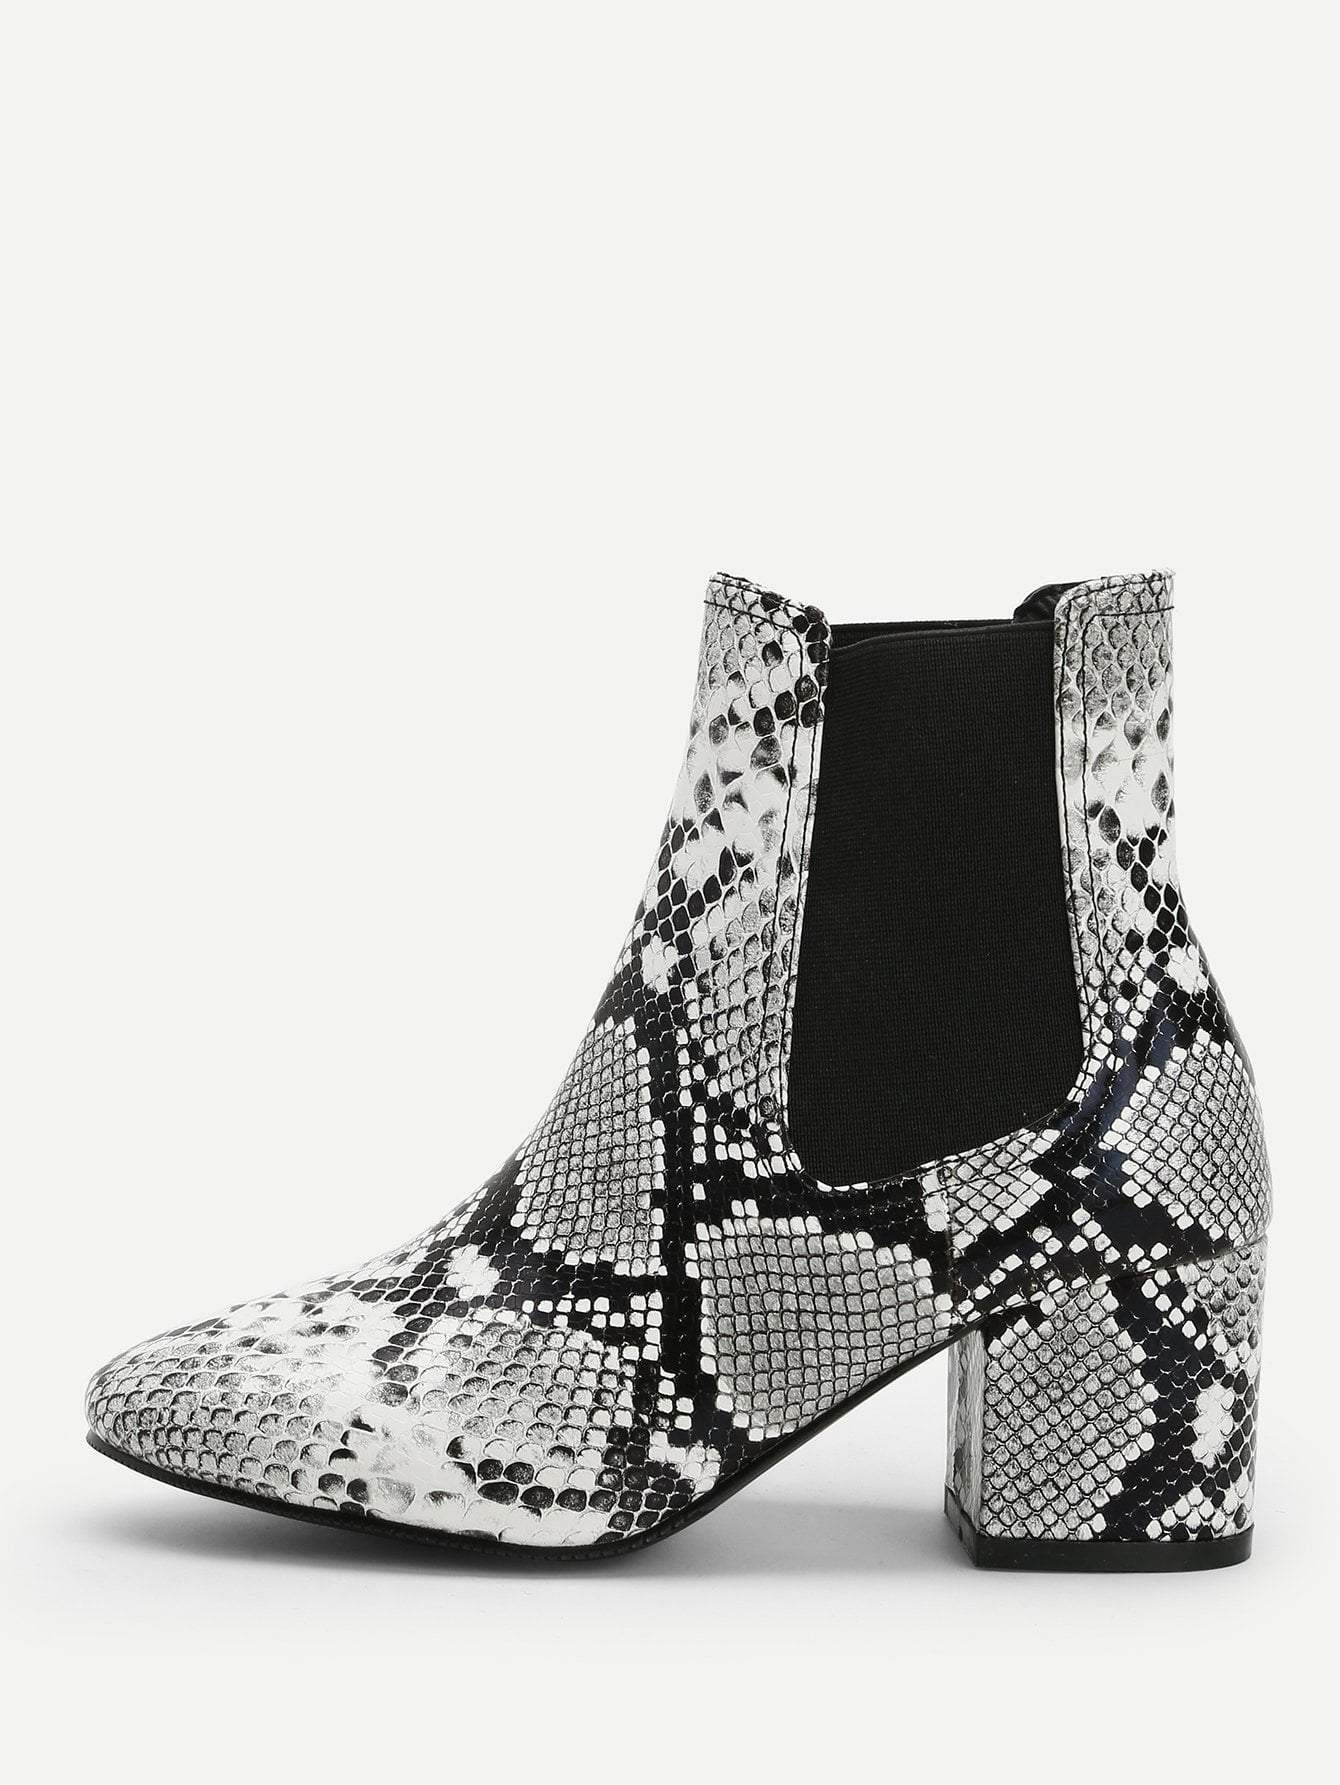 78c46380ec3 snakeskin pattern ankle boots. #boots #shoes #women #fashion | Ateez ...